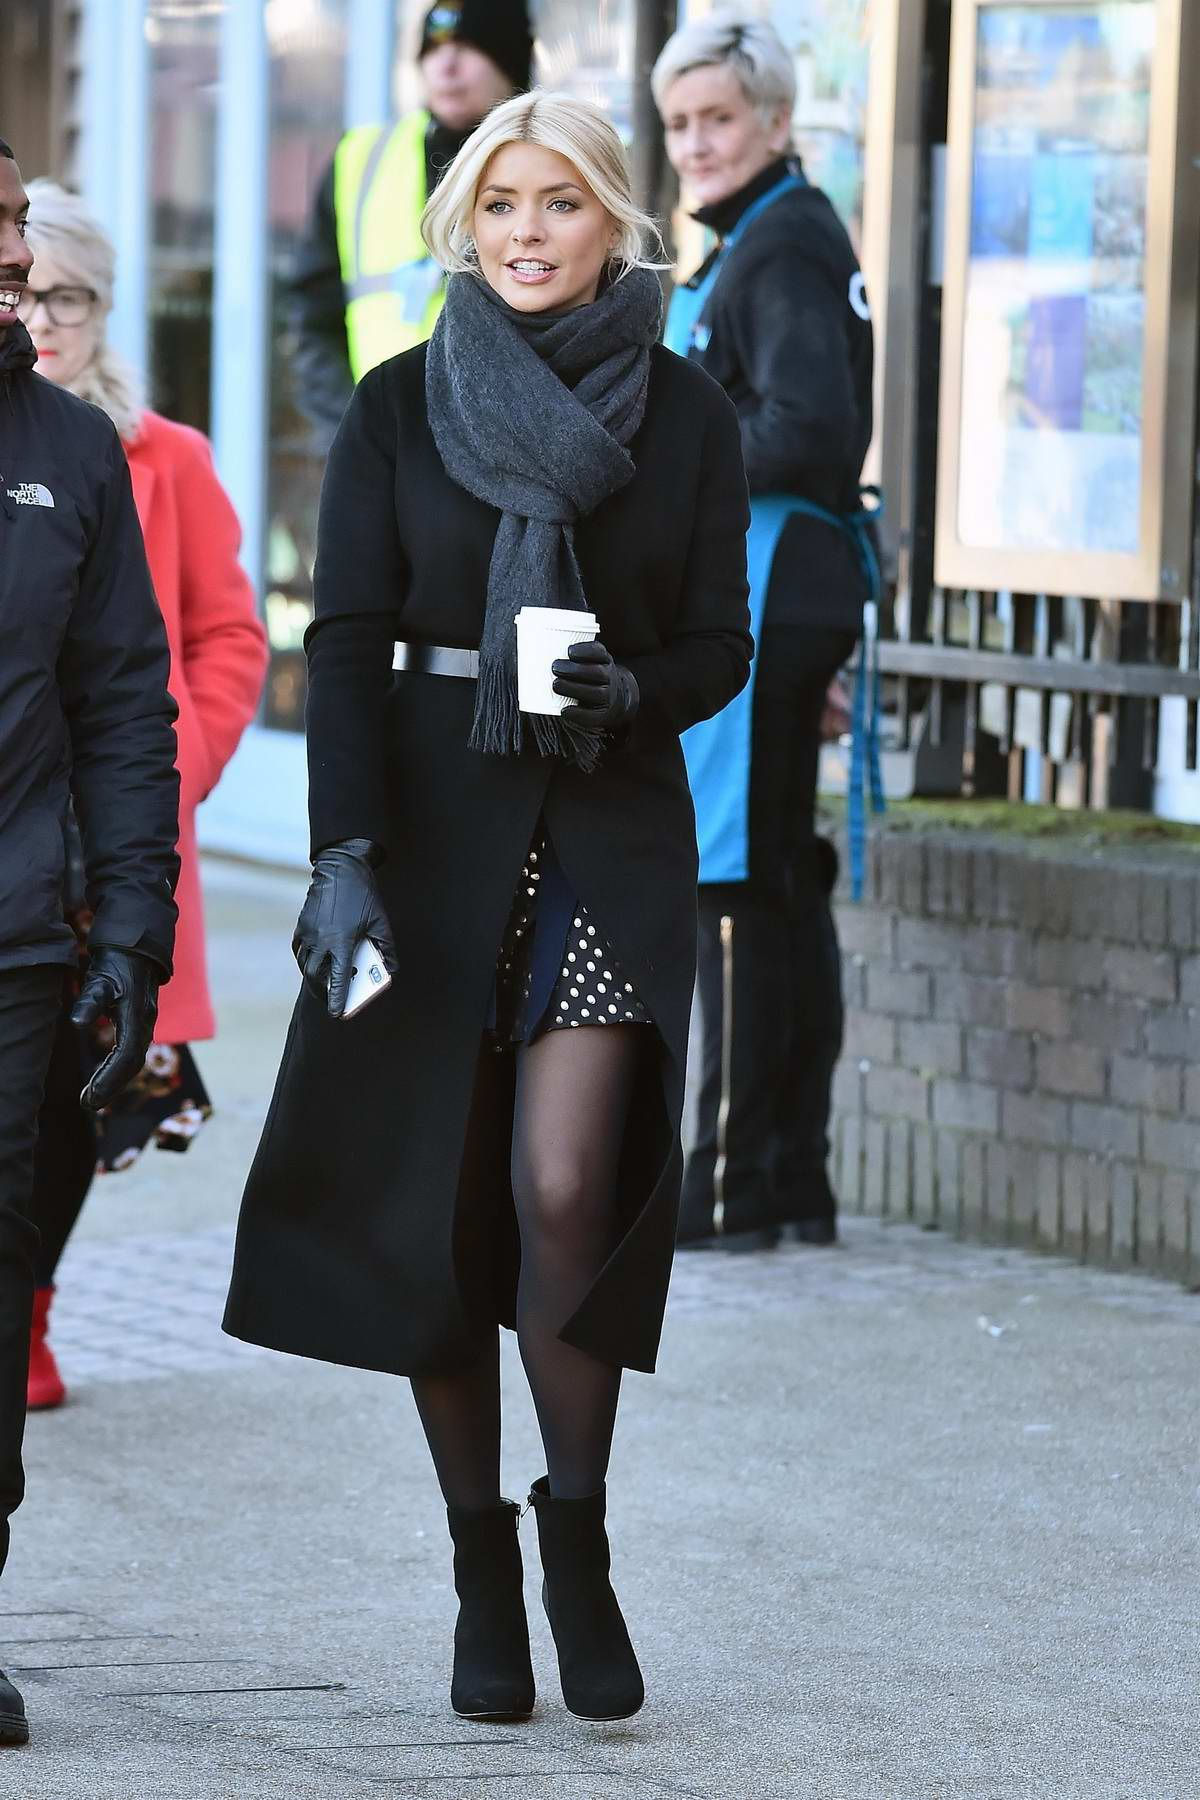 Holly Willoughby switching the 'This Morning' show Christmas tree lights in London